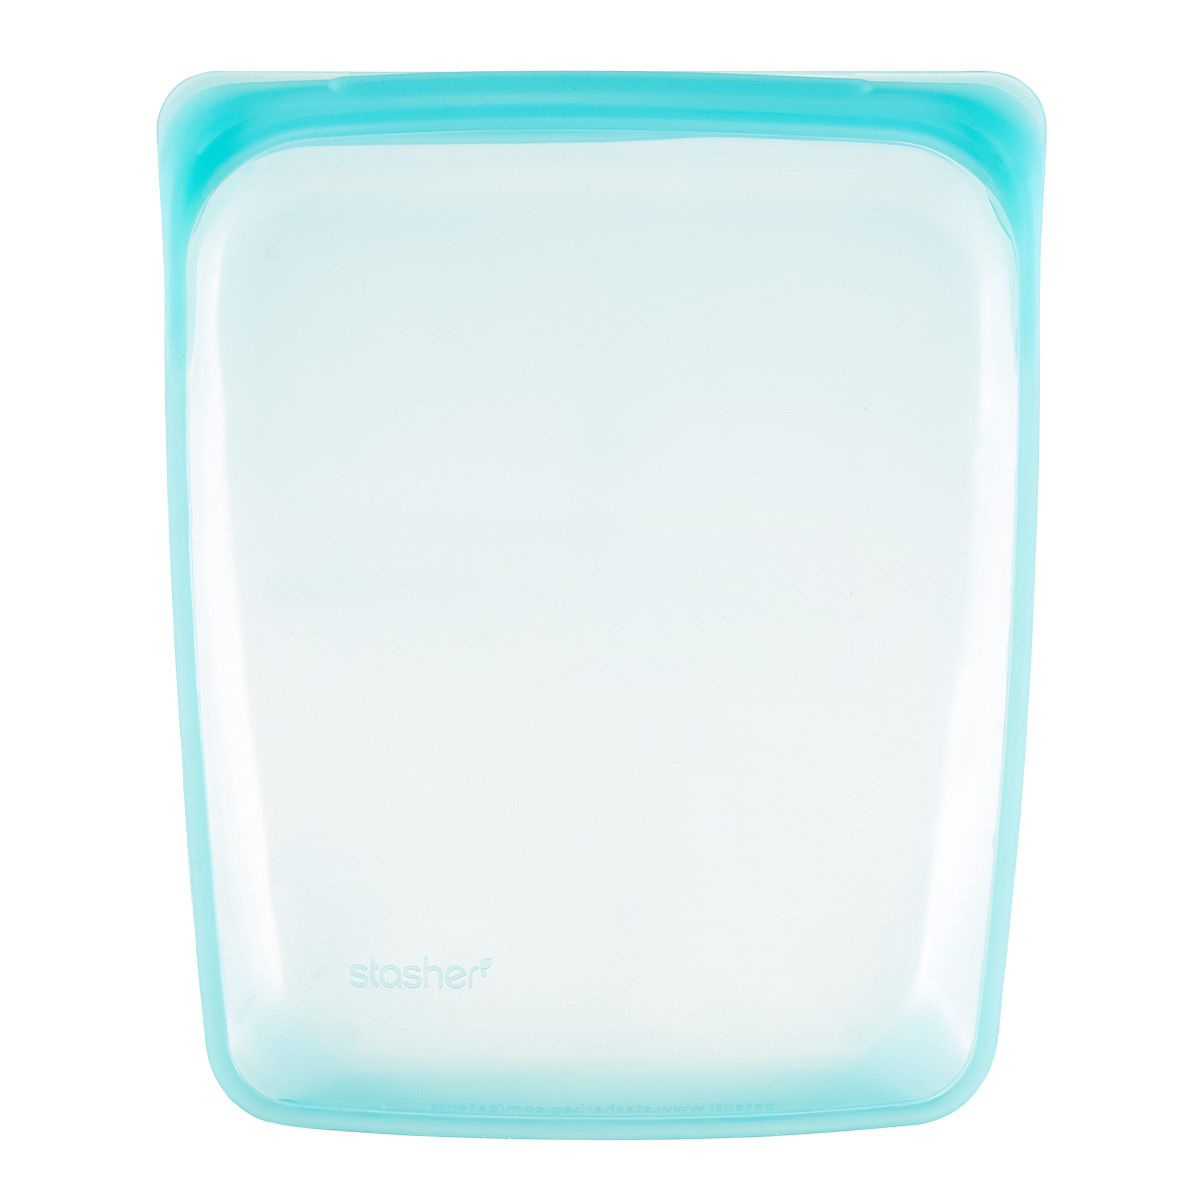 Stasher Aqua Half-Gallon Silicone Reusable Storage Bag